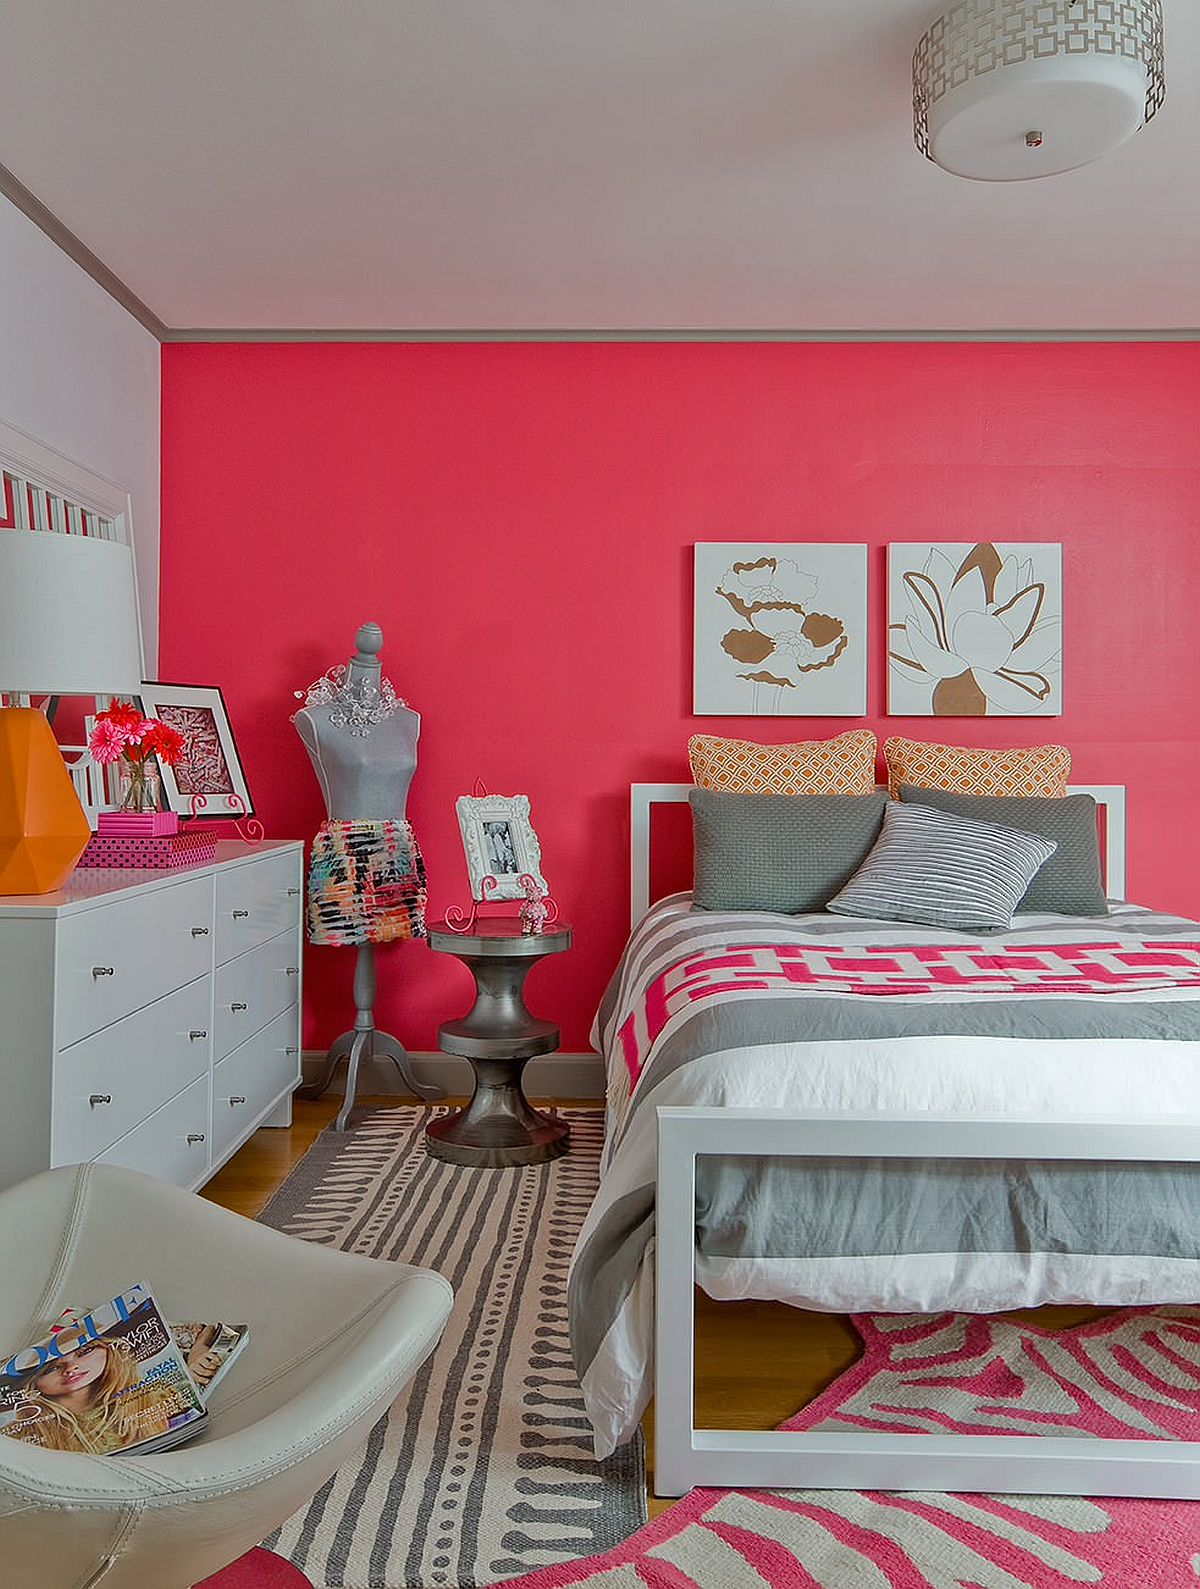 Bright pink accent wall for the eye-catching teen girls' bedroom that has an air sophistication